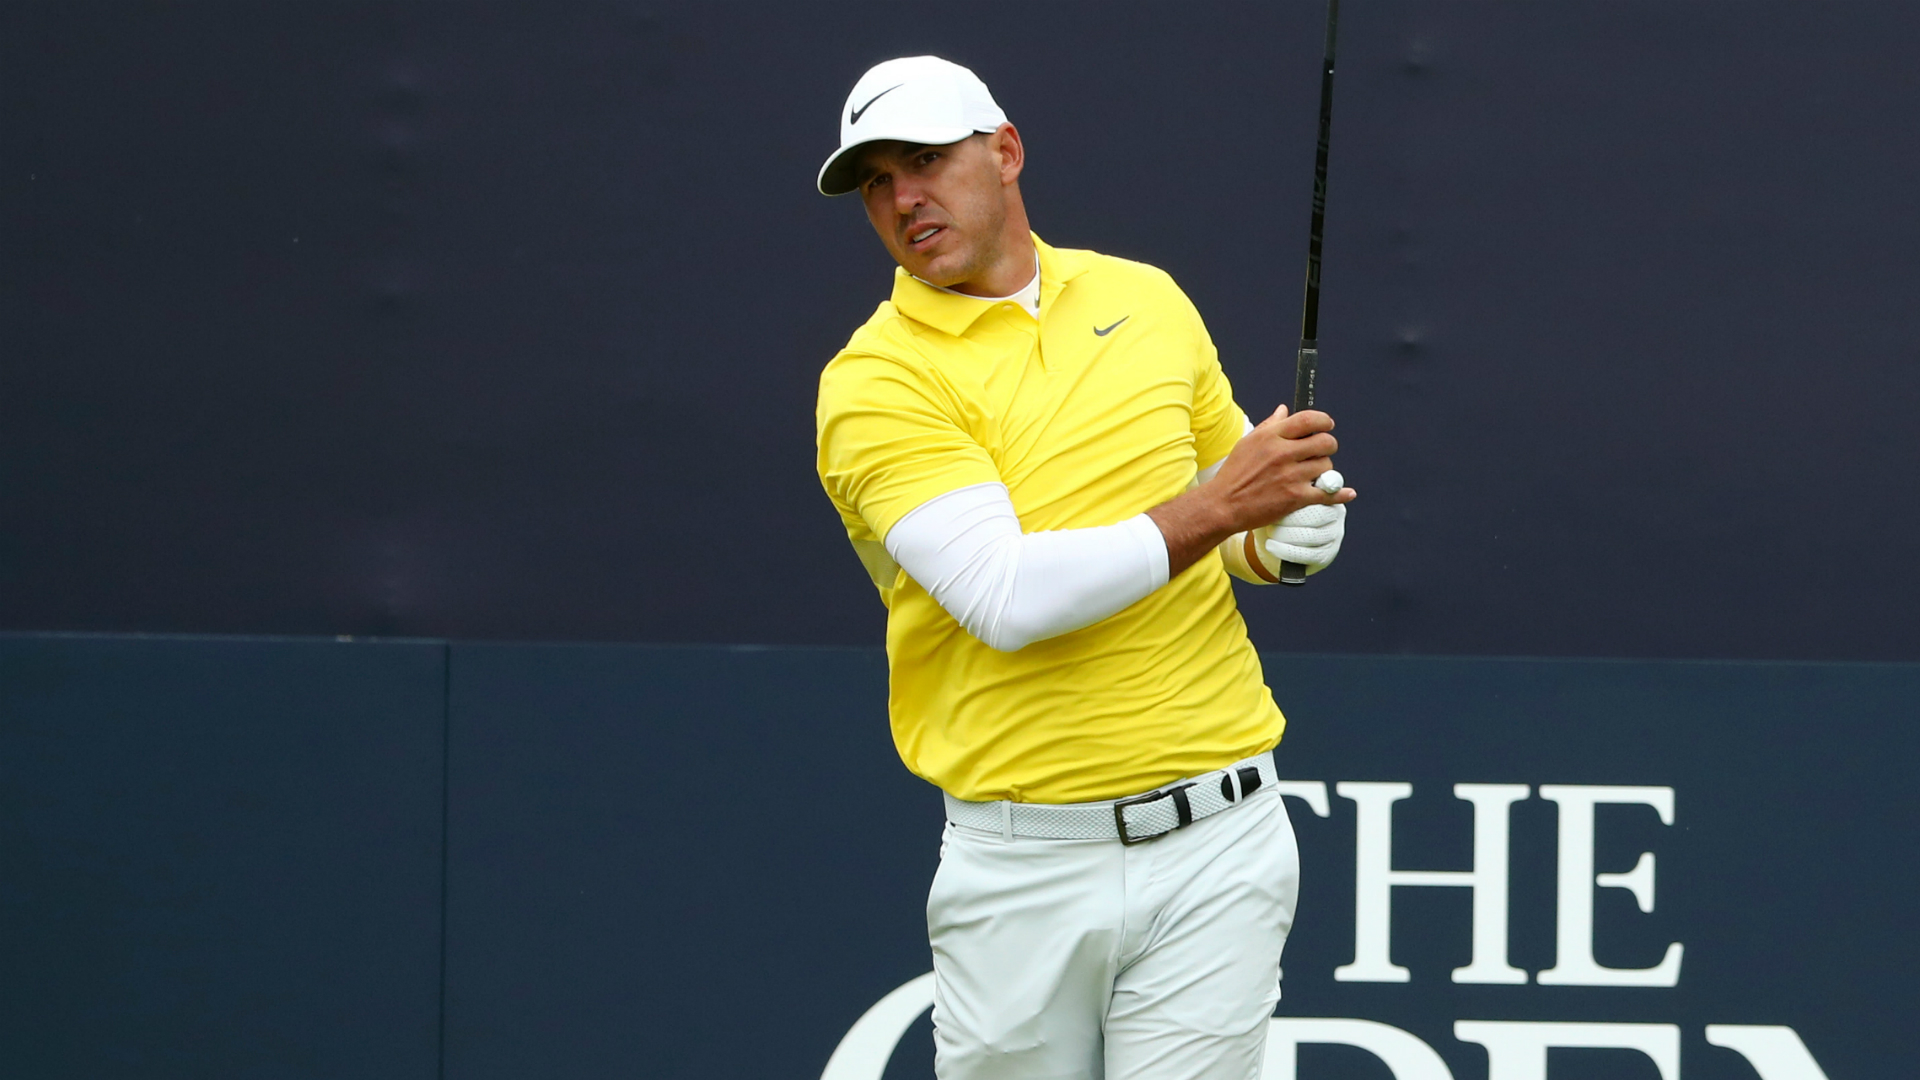 Koepka's Open hopes in tatters after dreadful start to round four